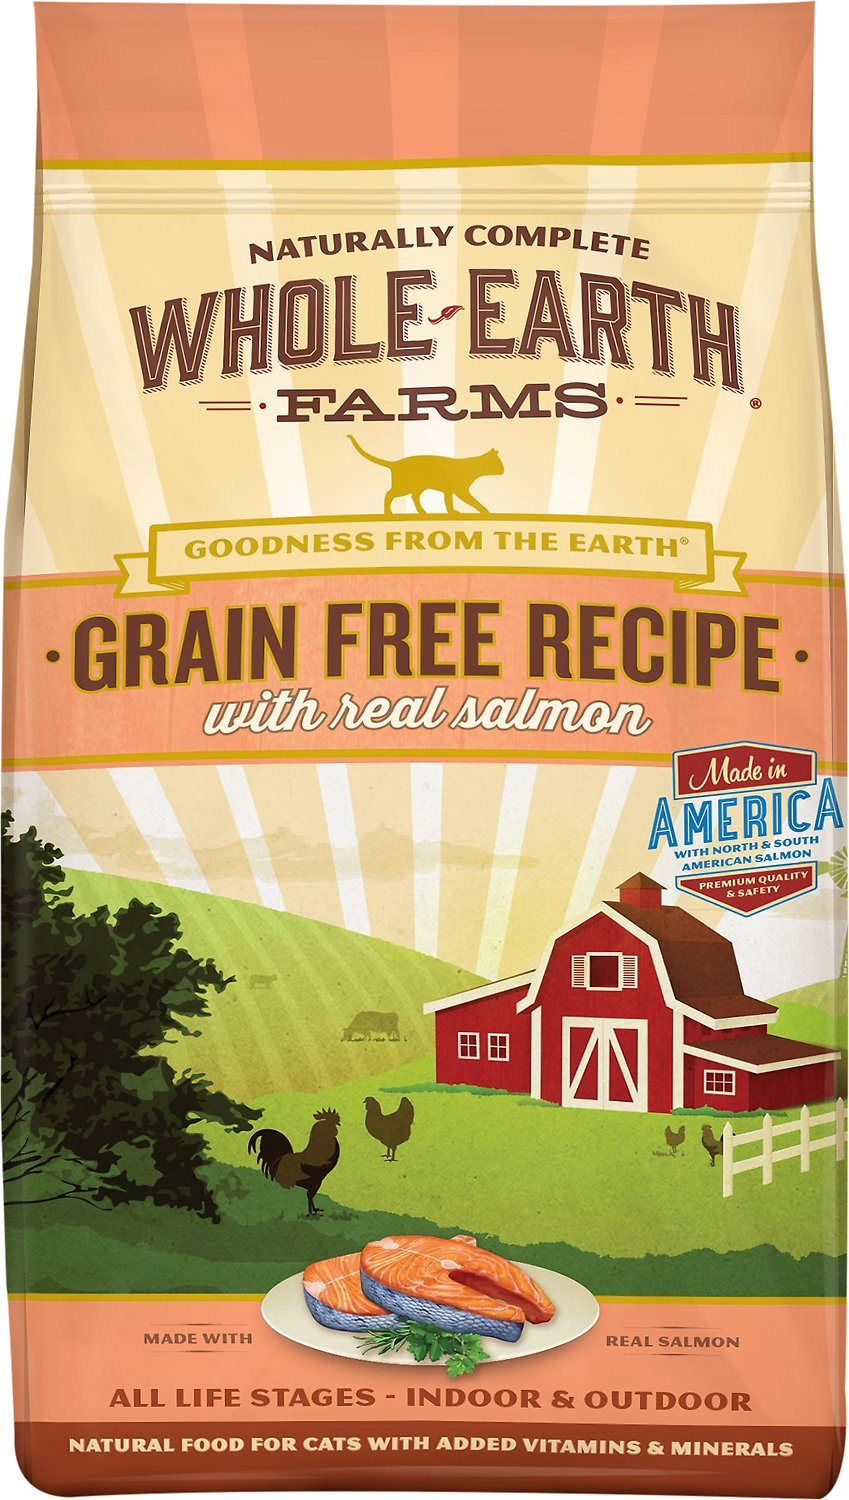 Whole Earth Farms Grain Free Recipe Dry Dog Food